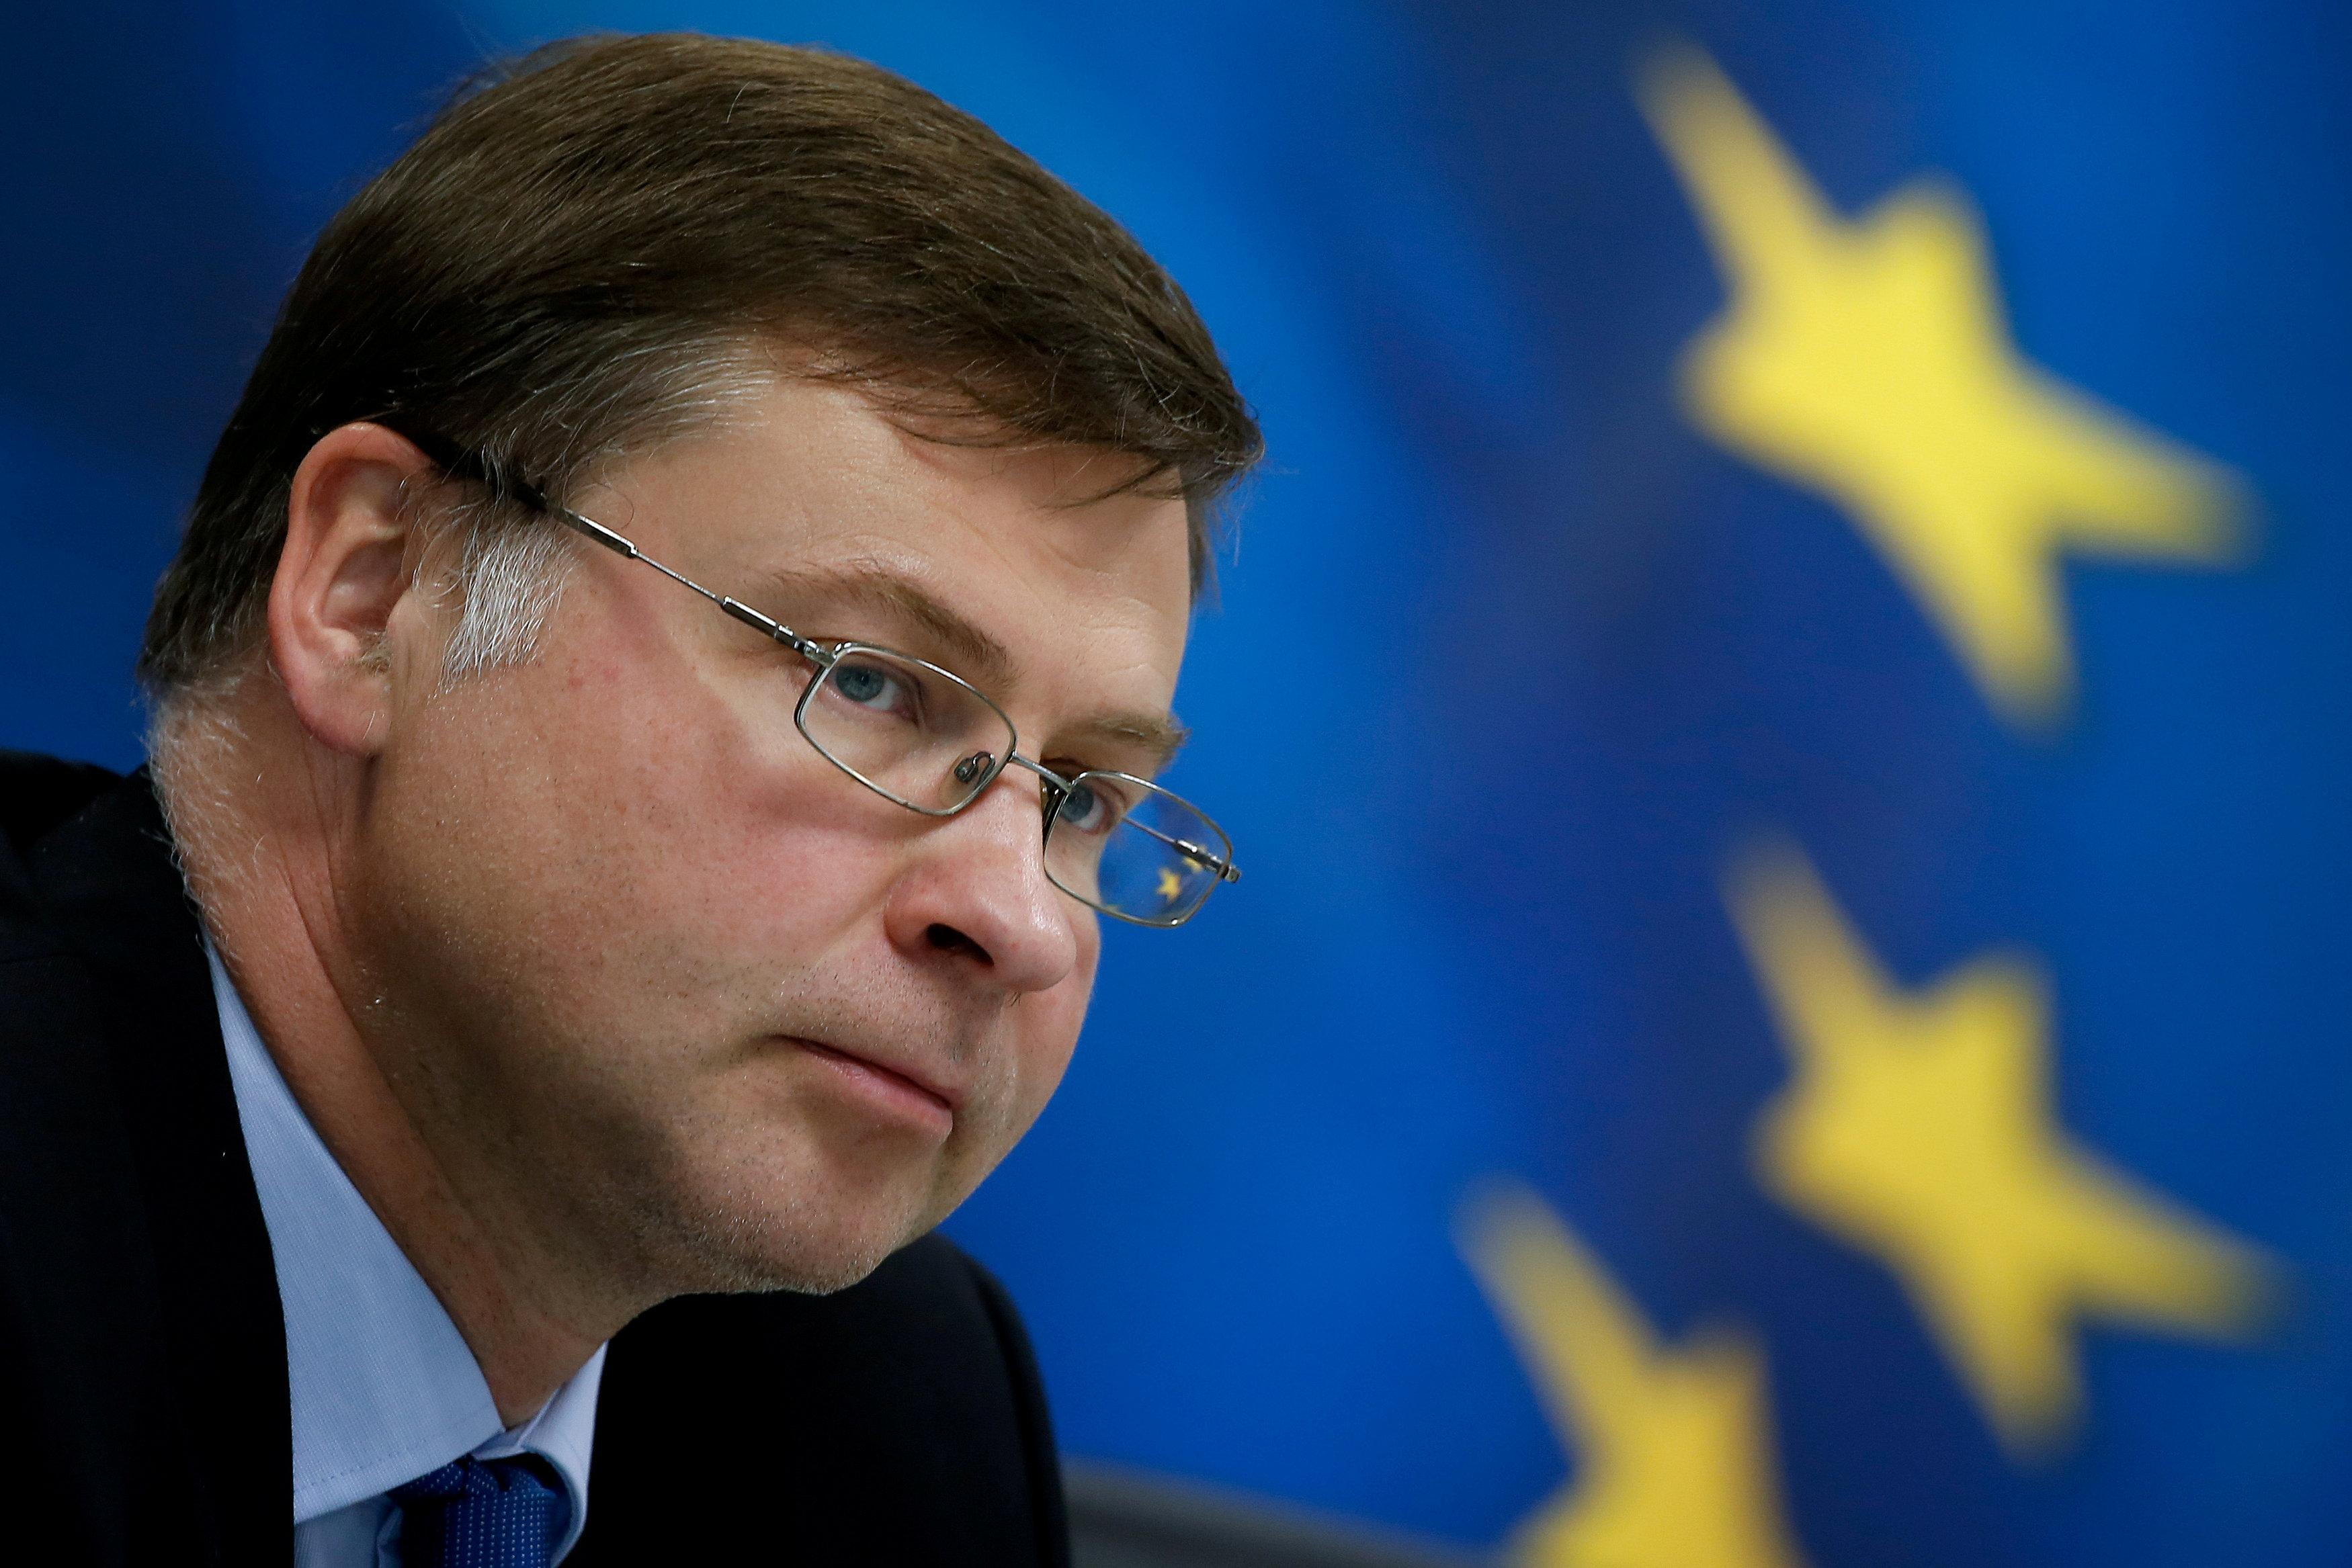 Valdis Dombrovskis attend a news conference at the Finance Ministry in Athens, Greece, June 15, 2018. Costas Baltas